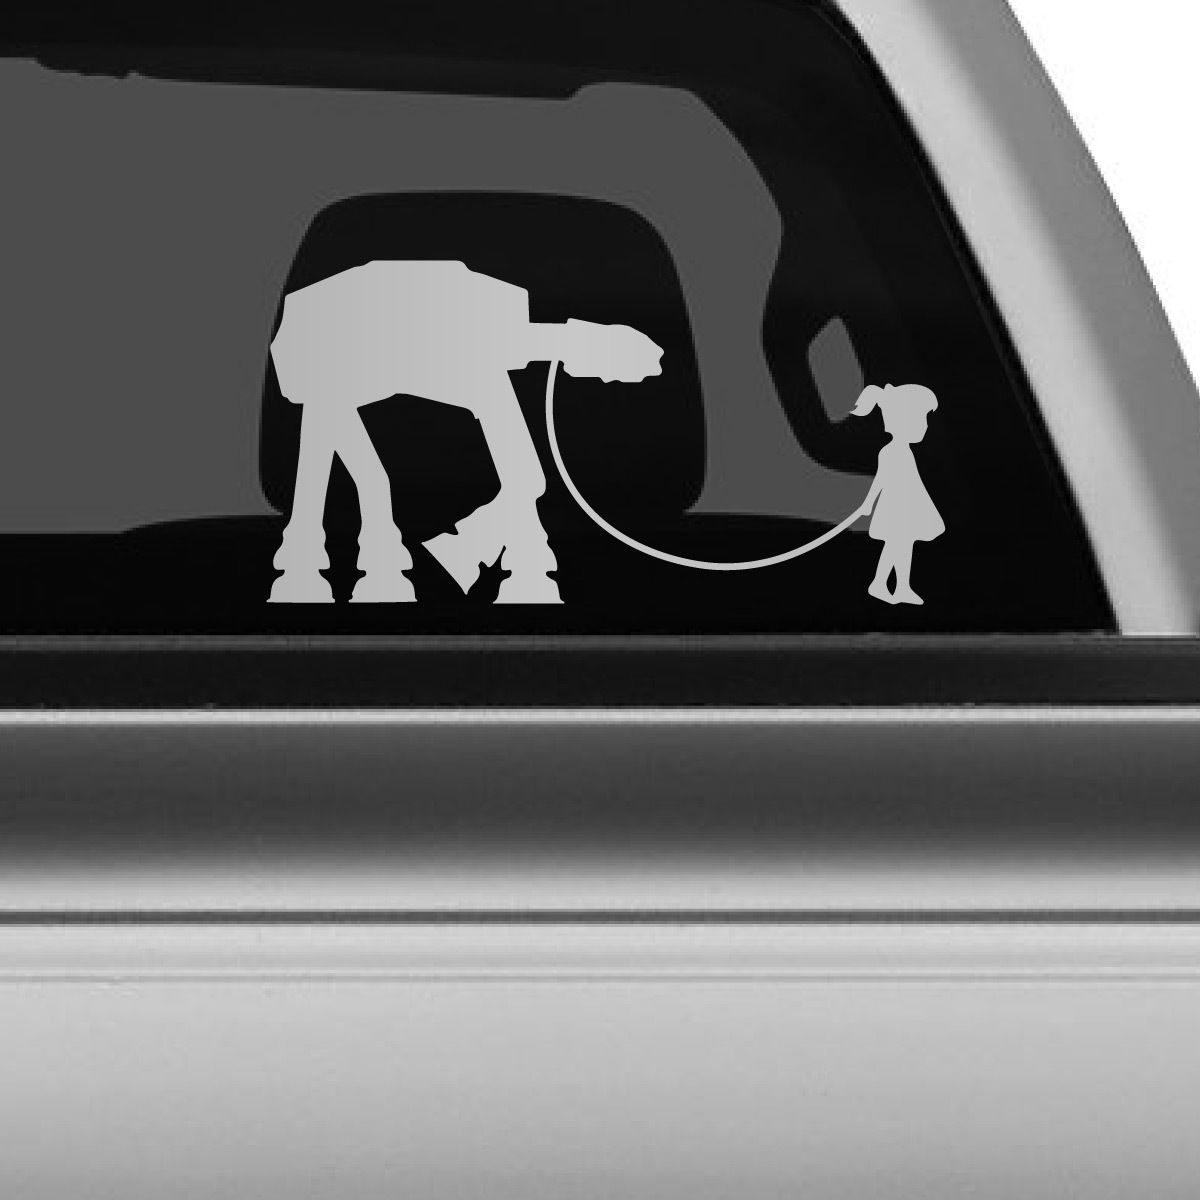 Star Wars ATAT Pet Car Decal Car Decal Star And Cars - Star wars car decals